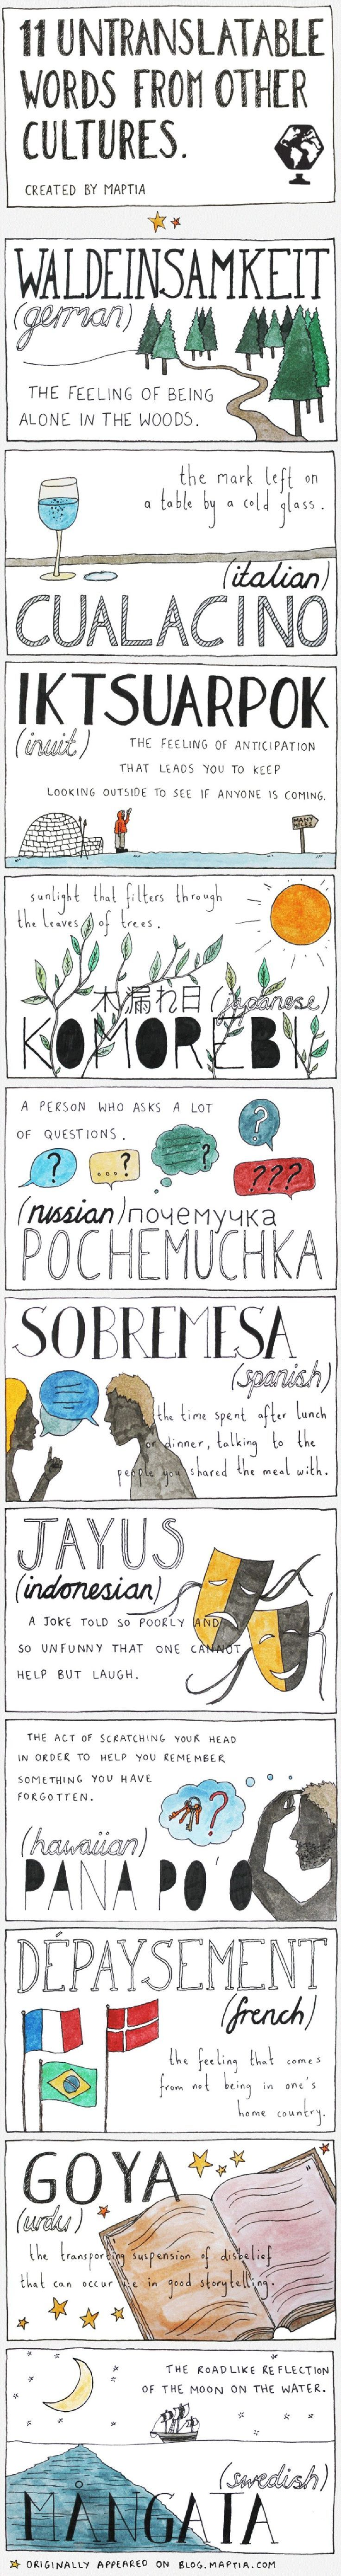 What other amazing foreign words do you know?